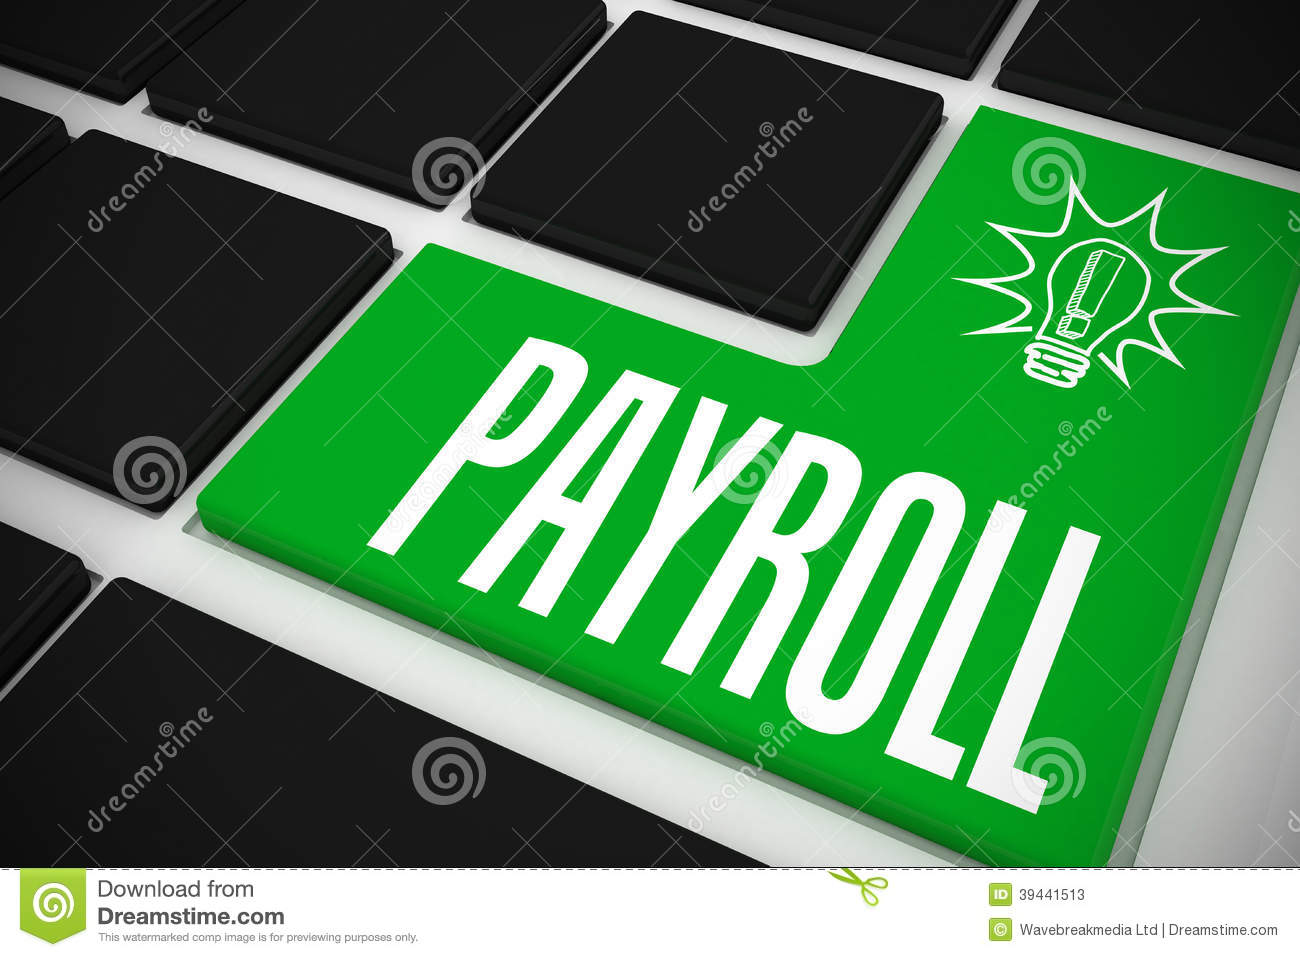 Payroll On Black Keyboard With Green Key Stock Photo - Image: 39441513